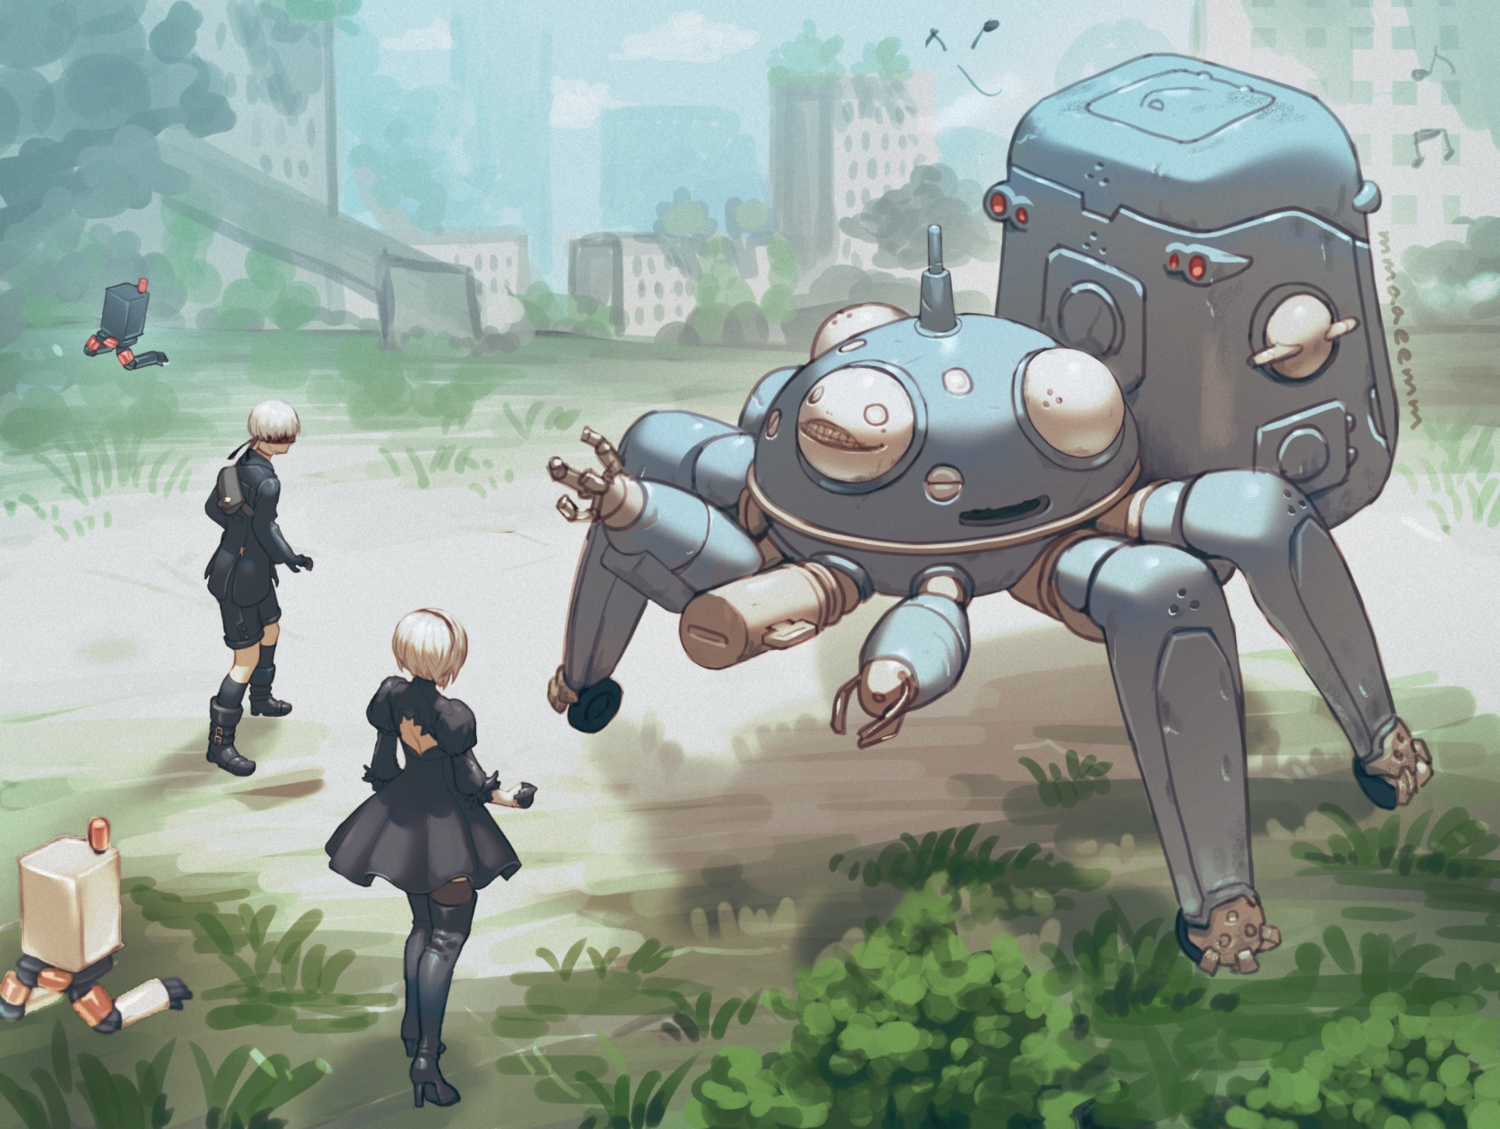 blindfold boots crossover dress elbow_gloves ghost_in_the_shell gloves headband kneehighs komakuchi_mame male music nier nier:_automata pod_(nier:_automata) robot short_hair shorts signed tachikoma thighhighs white_hair yorha_unit_no._2_type_b yorha_unit_no._9_type_s